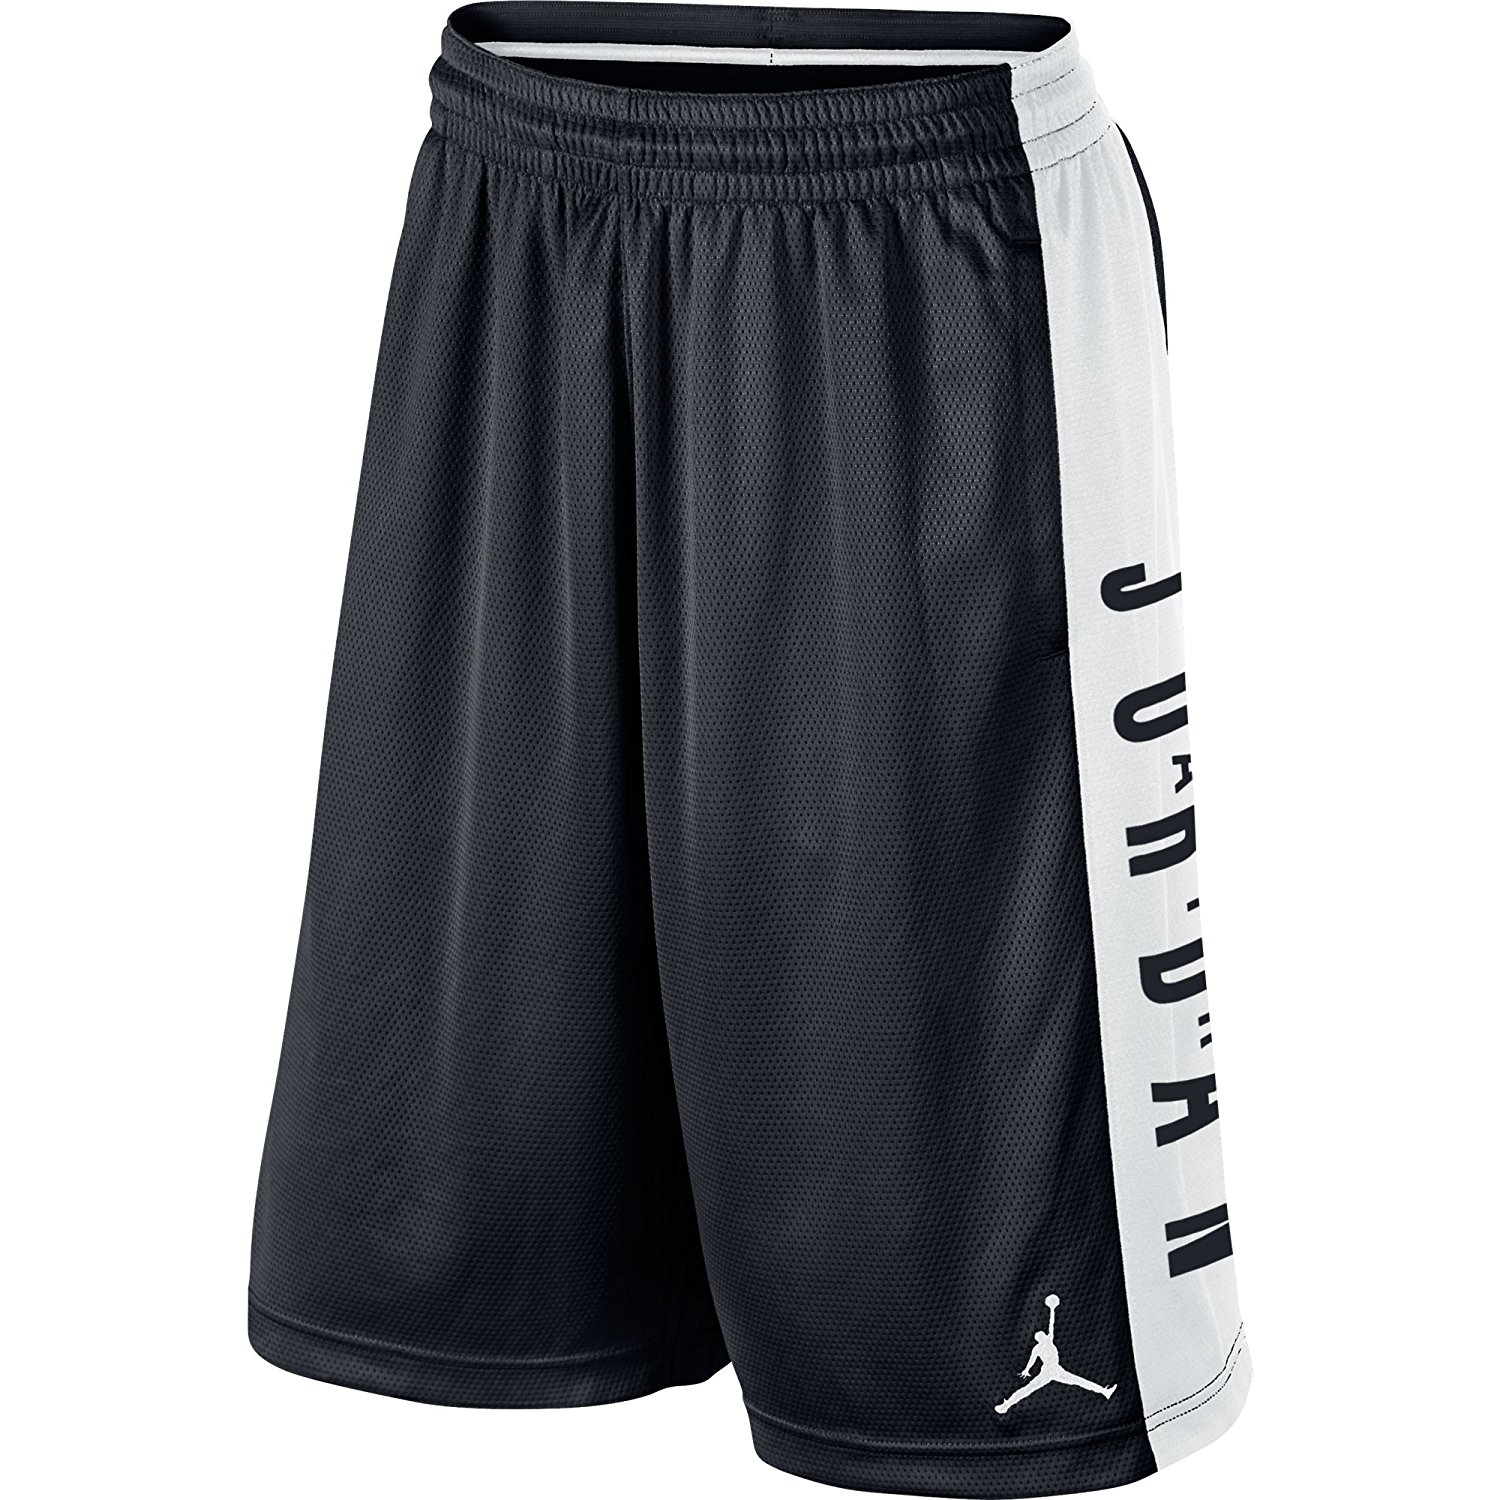 1ce7bf14d3d Get Quotations · Jordan Men's Nike Dri-Fit AJ Highlight Basketball Shorts